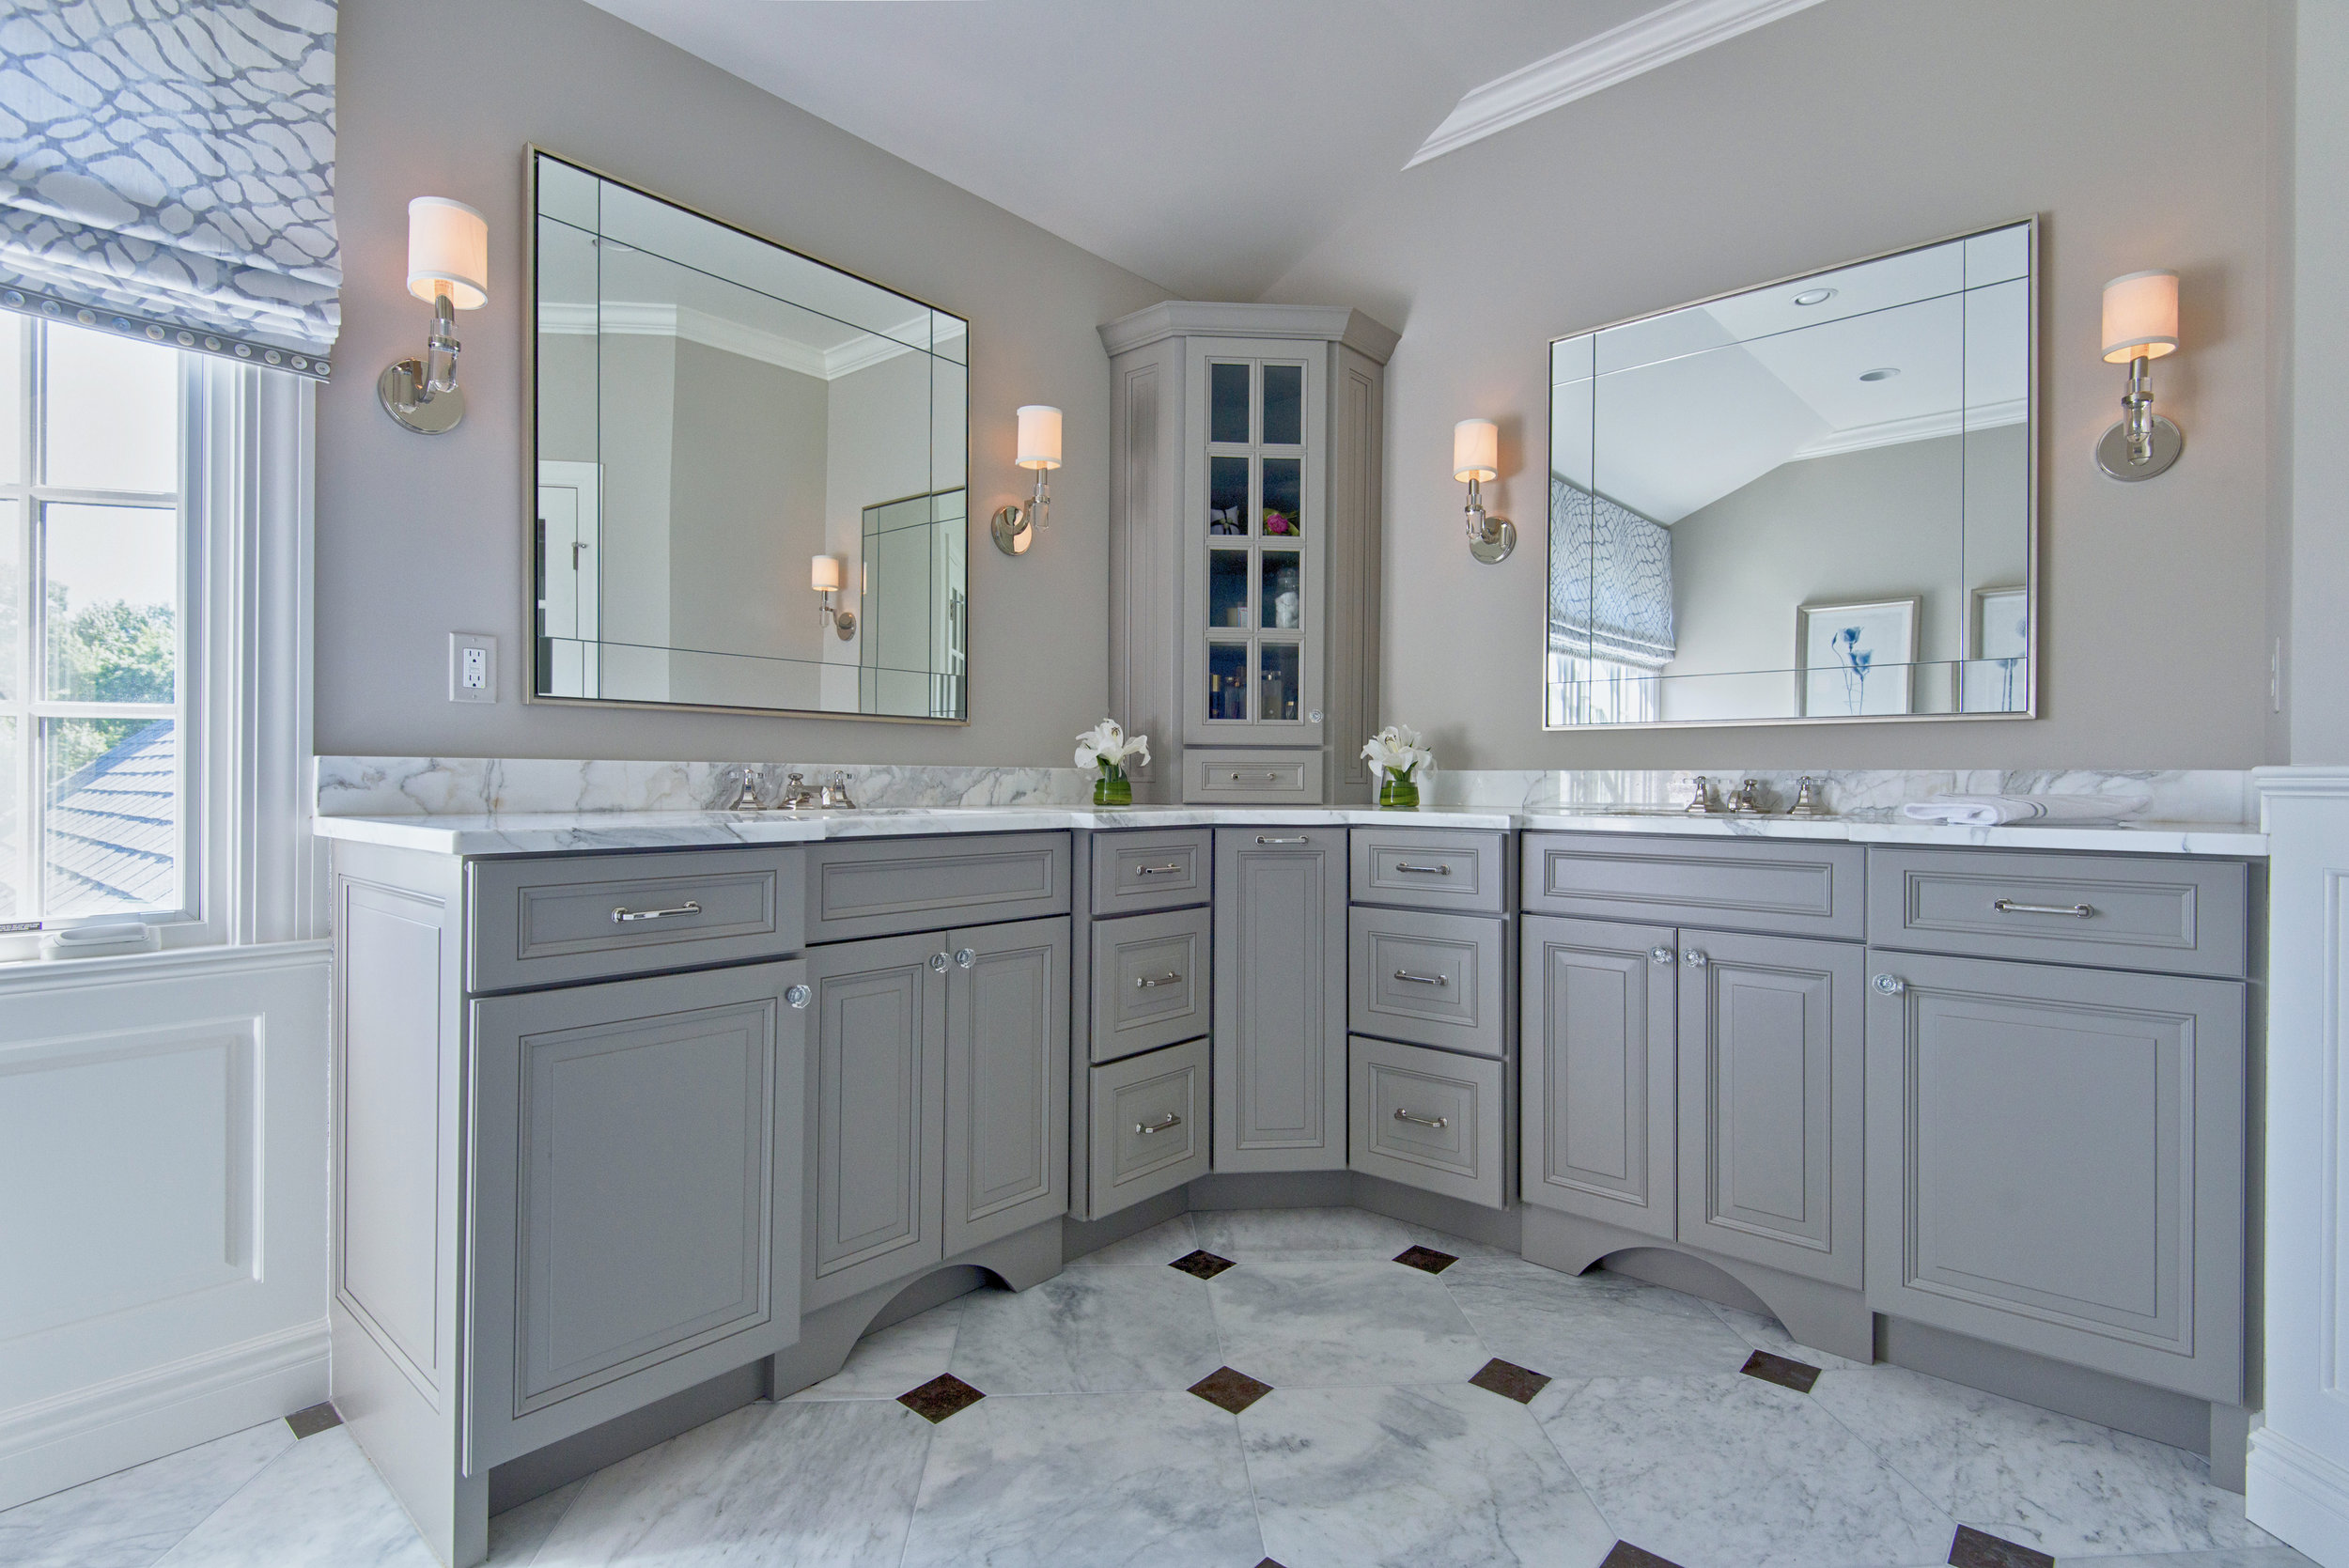 Grey and White Master Bath realtor, real estate and interior design photography. Bay Area Photographer ©ninapomeroy.com